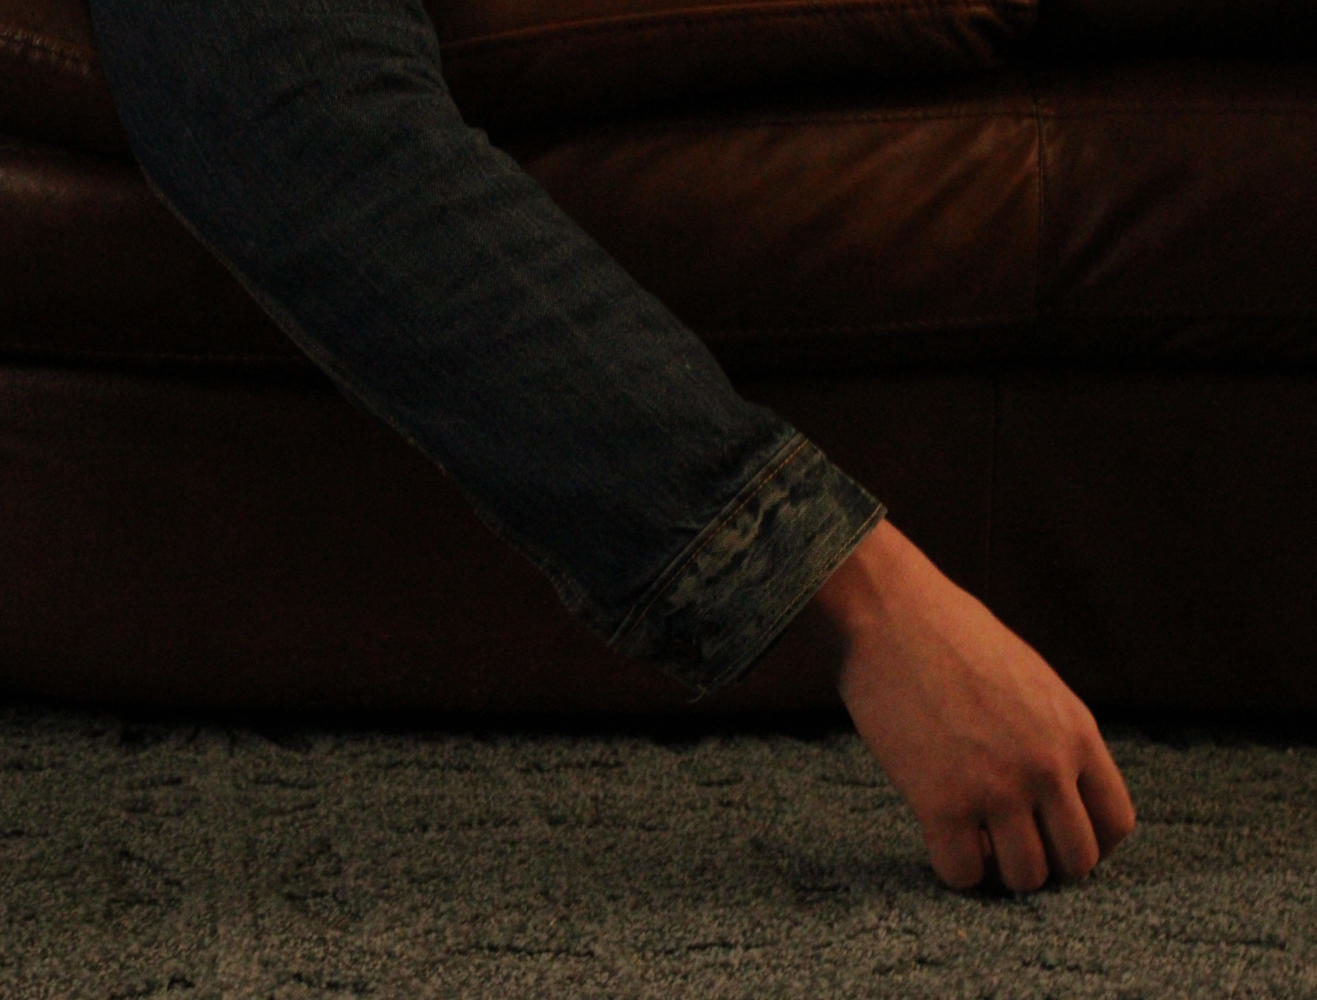 These images are photo illustrations depicting life in an abusive household.